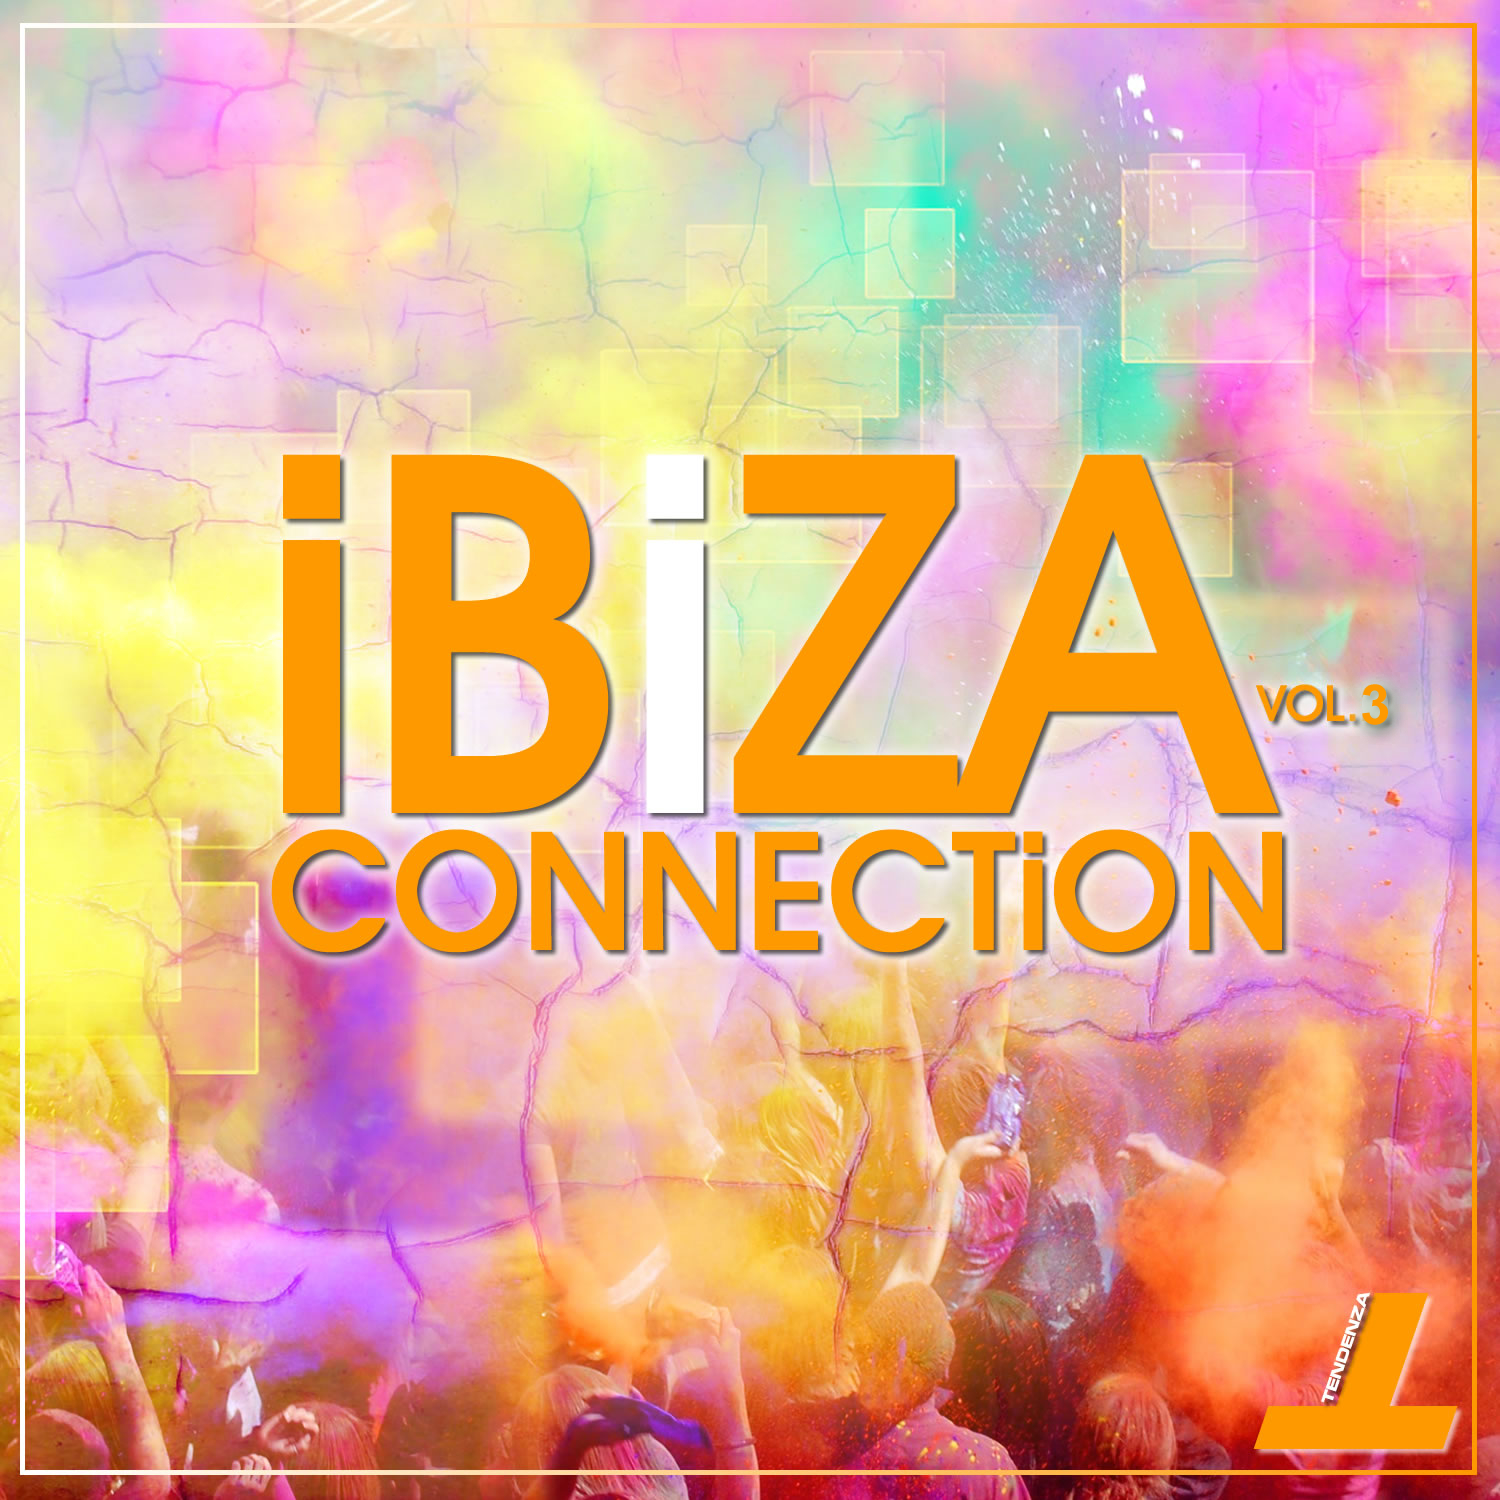 0603404073054_ibiza-connection-vol-3